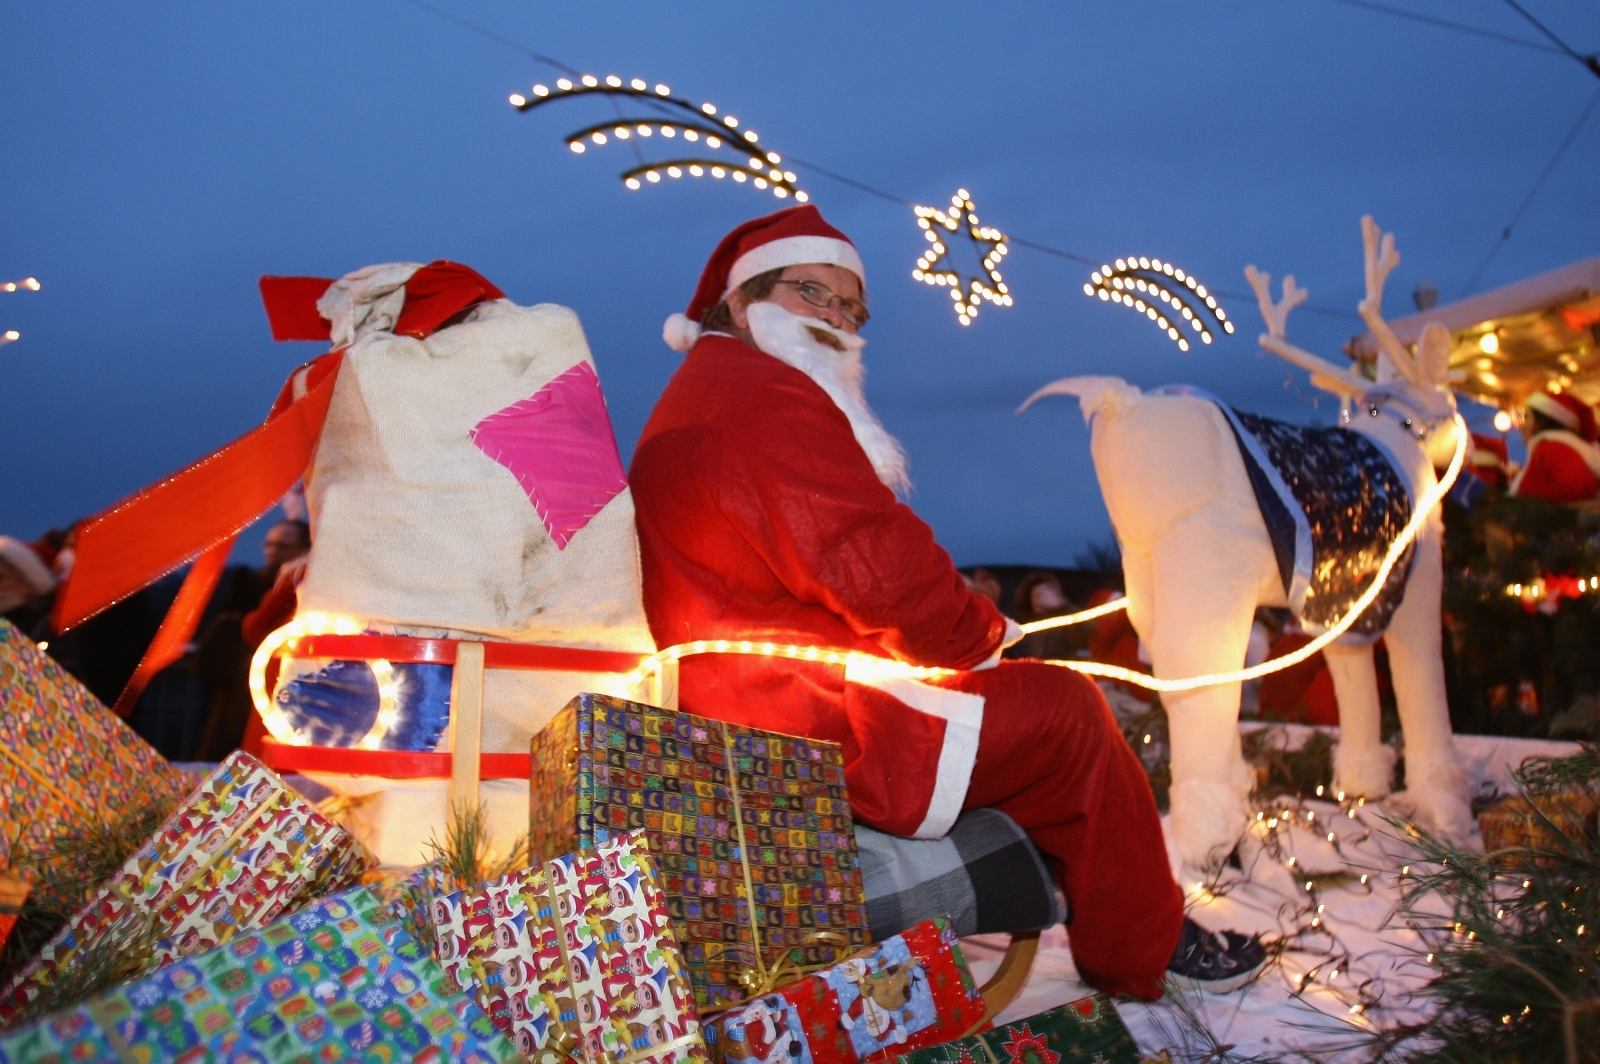 A Man Dressed In A Santa Claus Outfit Sits On A Sledge During The 11th  Santa Clauses Parade On December 5, 2009, In Brandenburg, Near Berlin,  Germany.